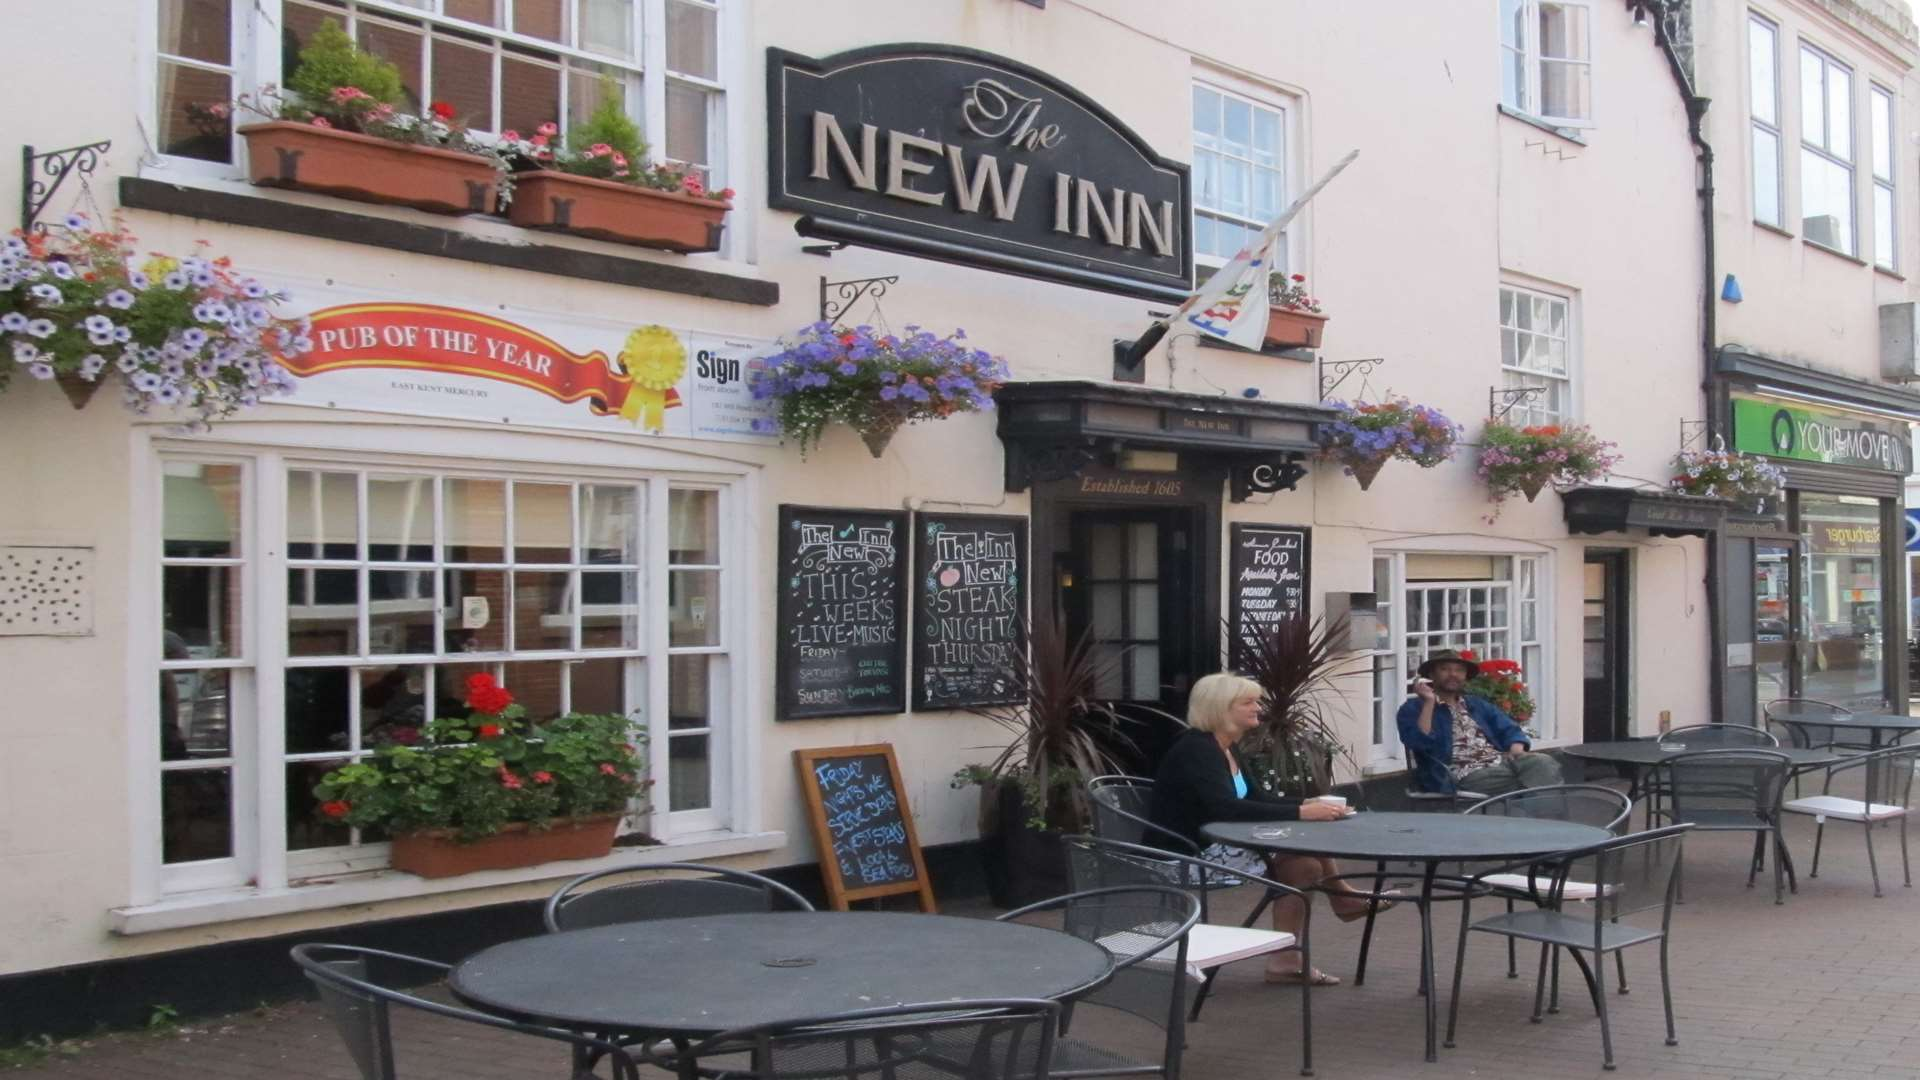 At least 10 people became ill after eating at the New Inn in September 2016